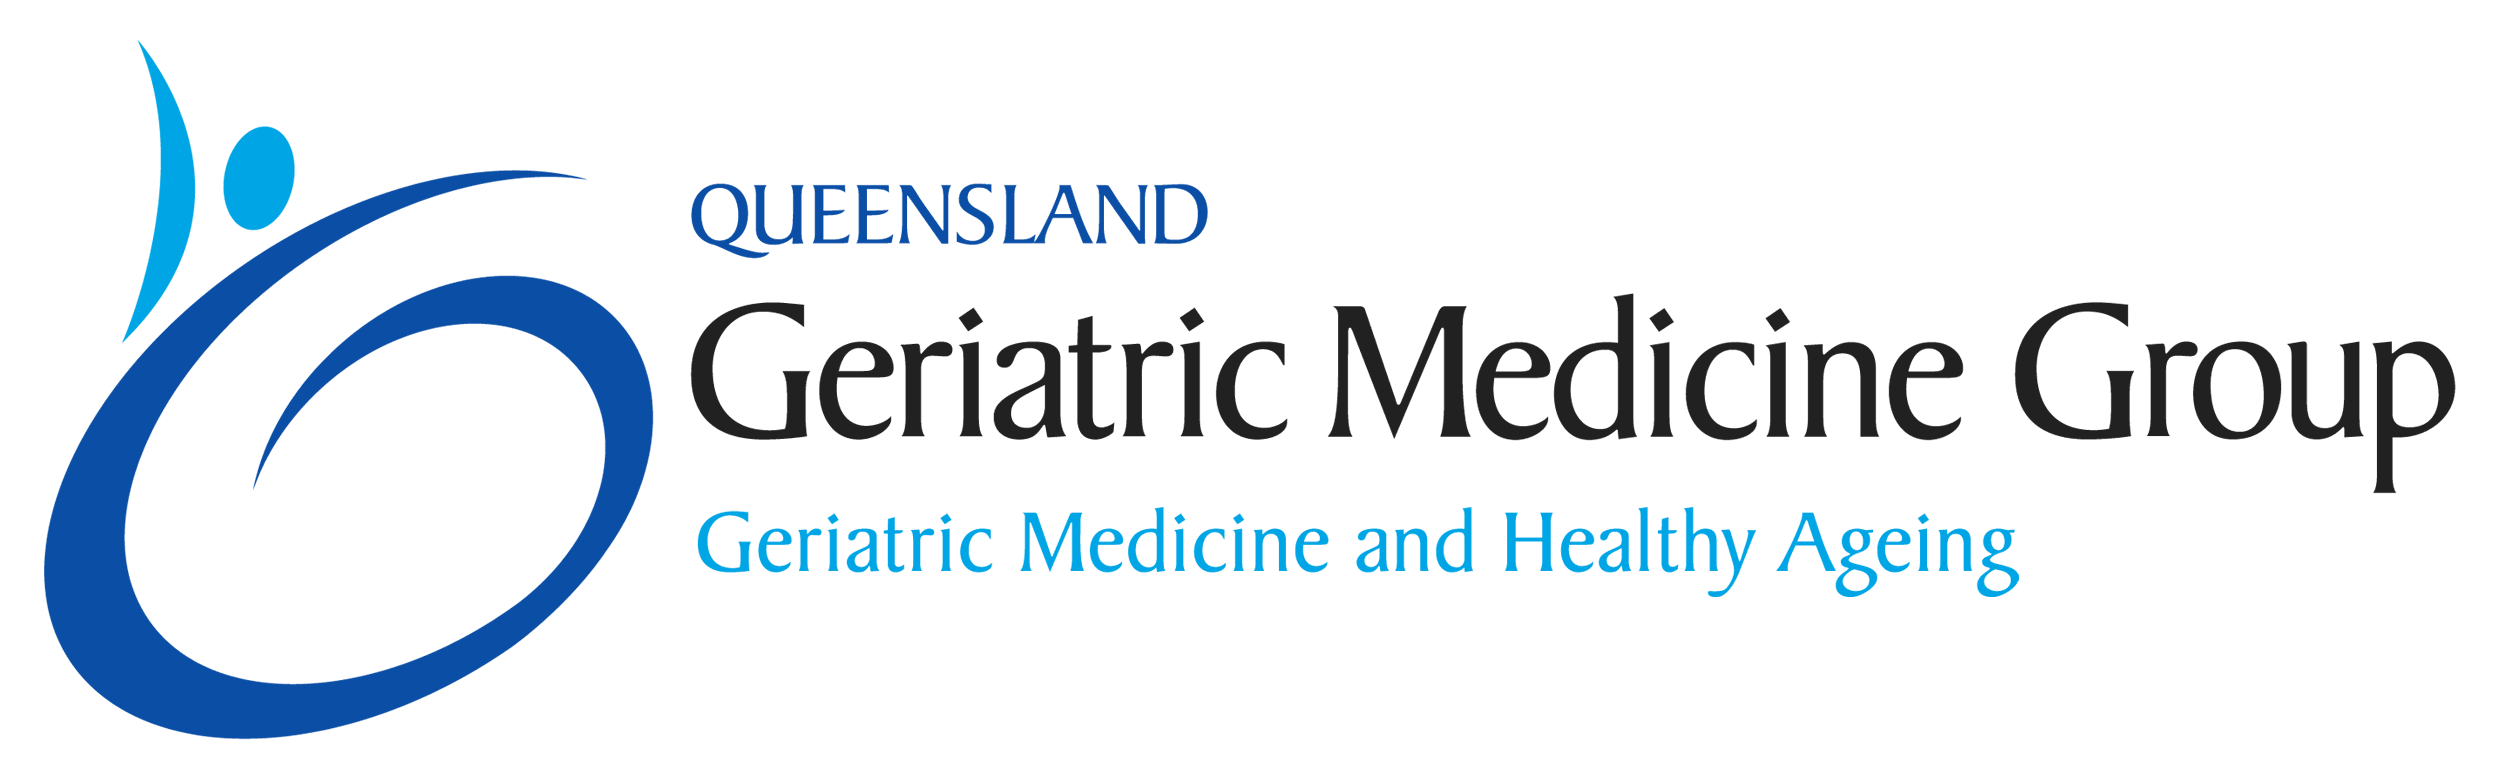 Queensland Geriatric Medicine Group